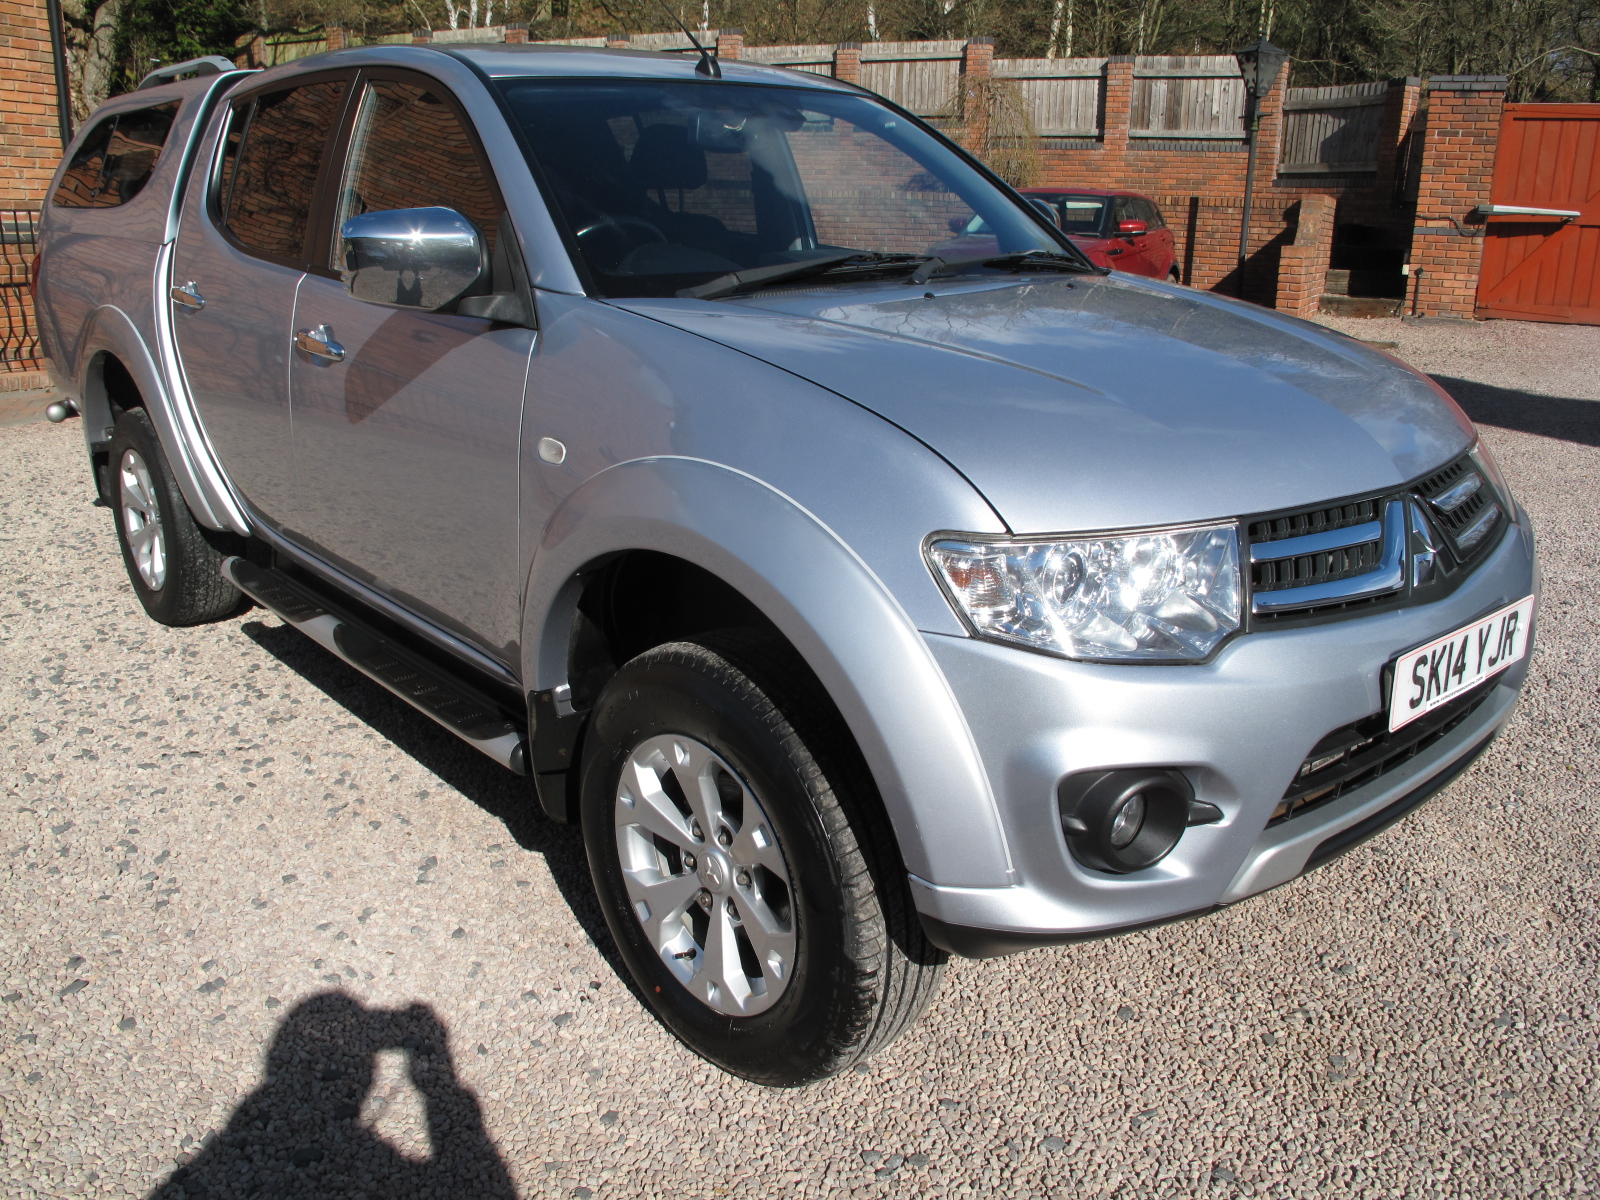 2014 14 Mitsubishi L200 2.5 DI-D CR Warrior 2 176 LB Double Cab Pickup 4WD ABSOLUTELY PRISTINE CONDITION THROUGHOUT! NO VAT!